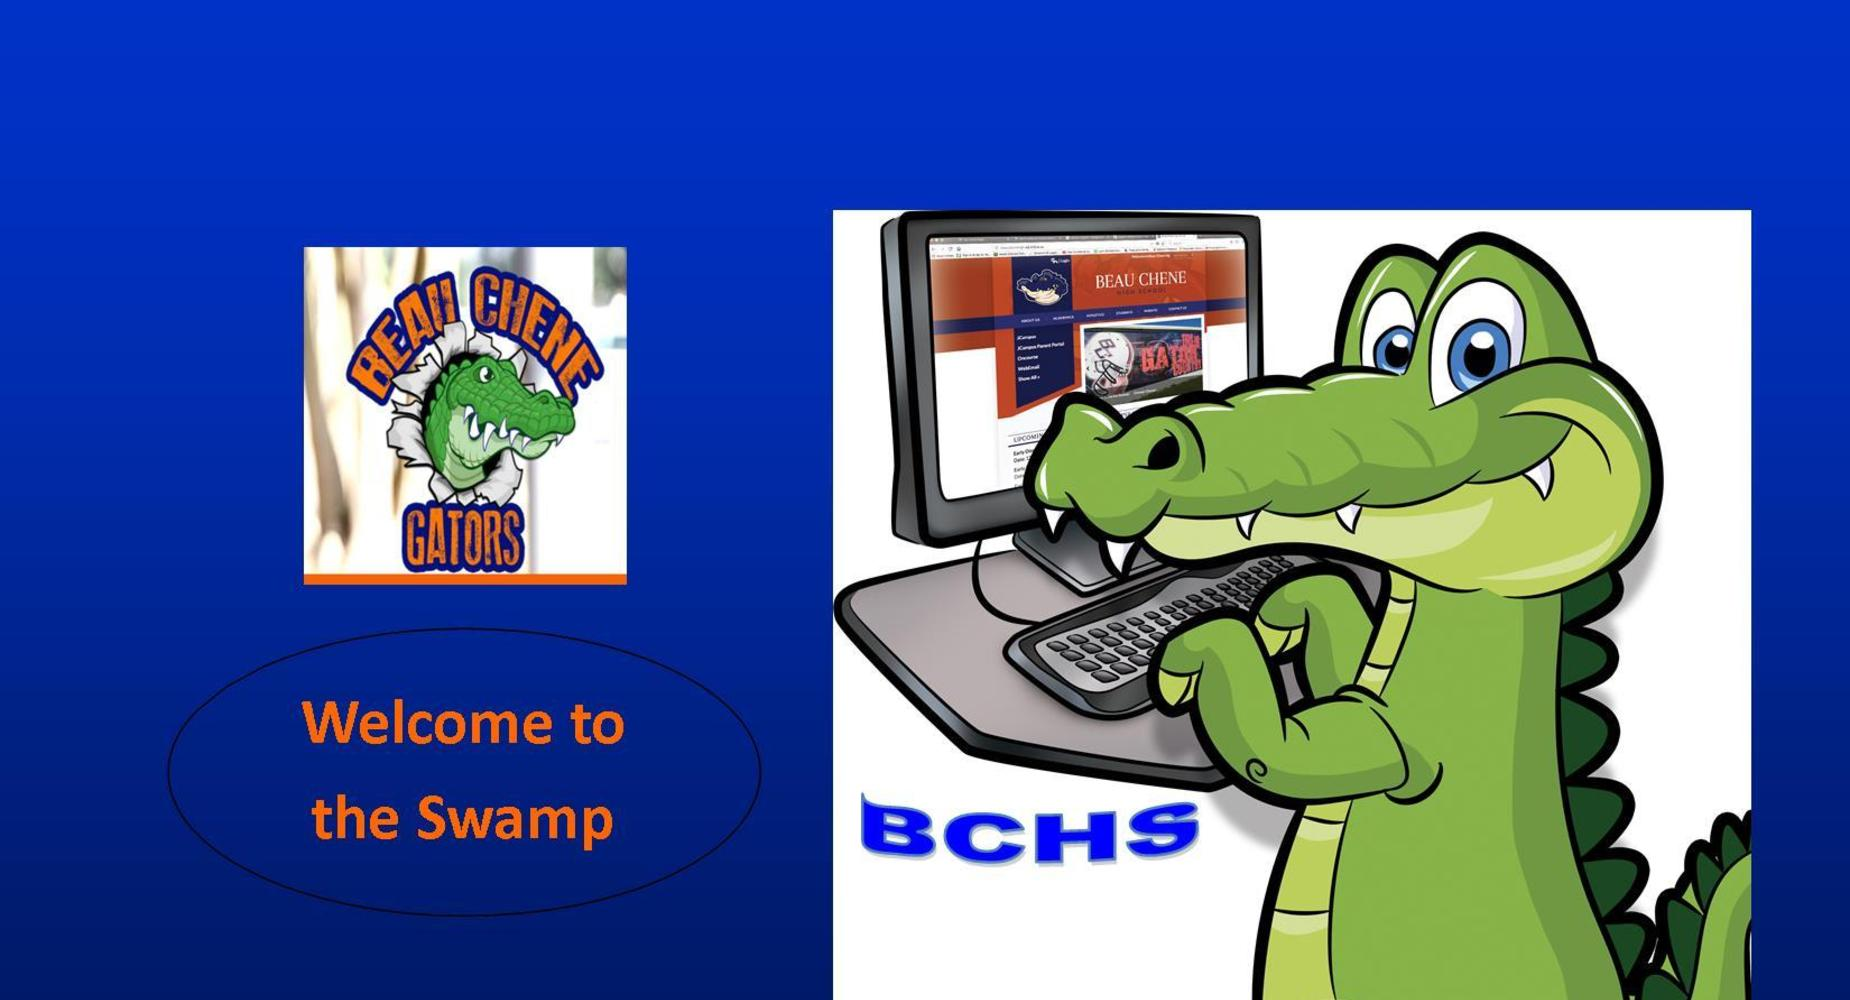 Welcome to the Swamp-Gator on the Computer